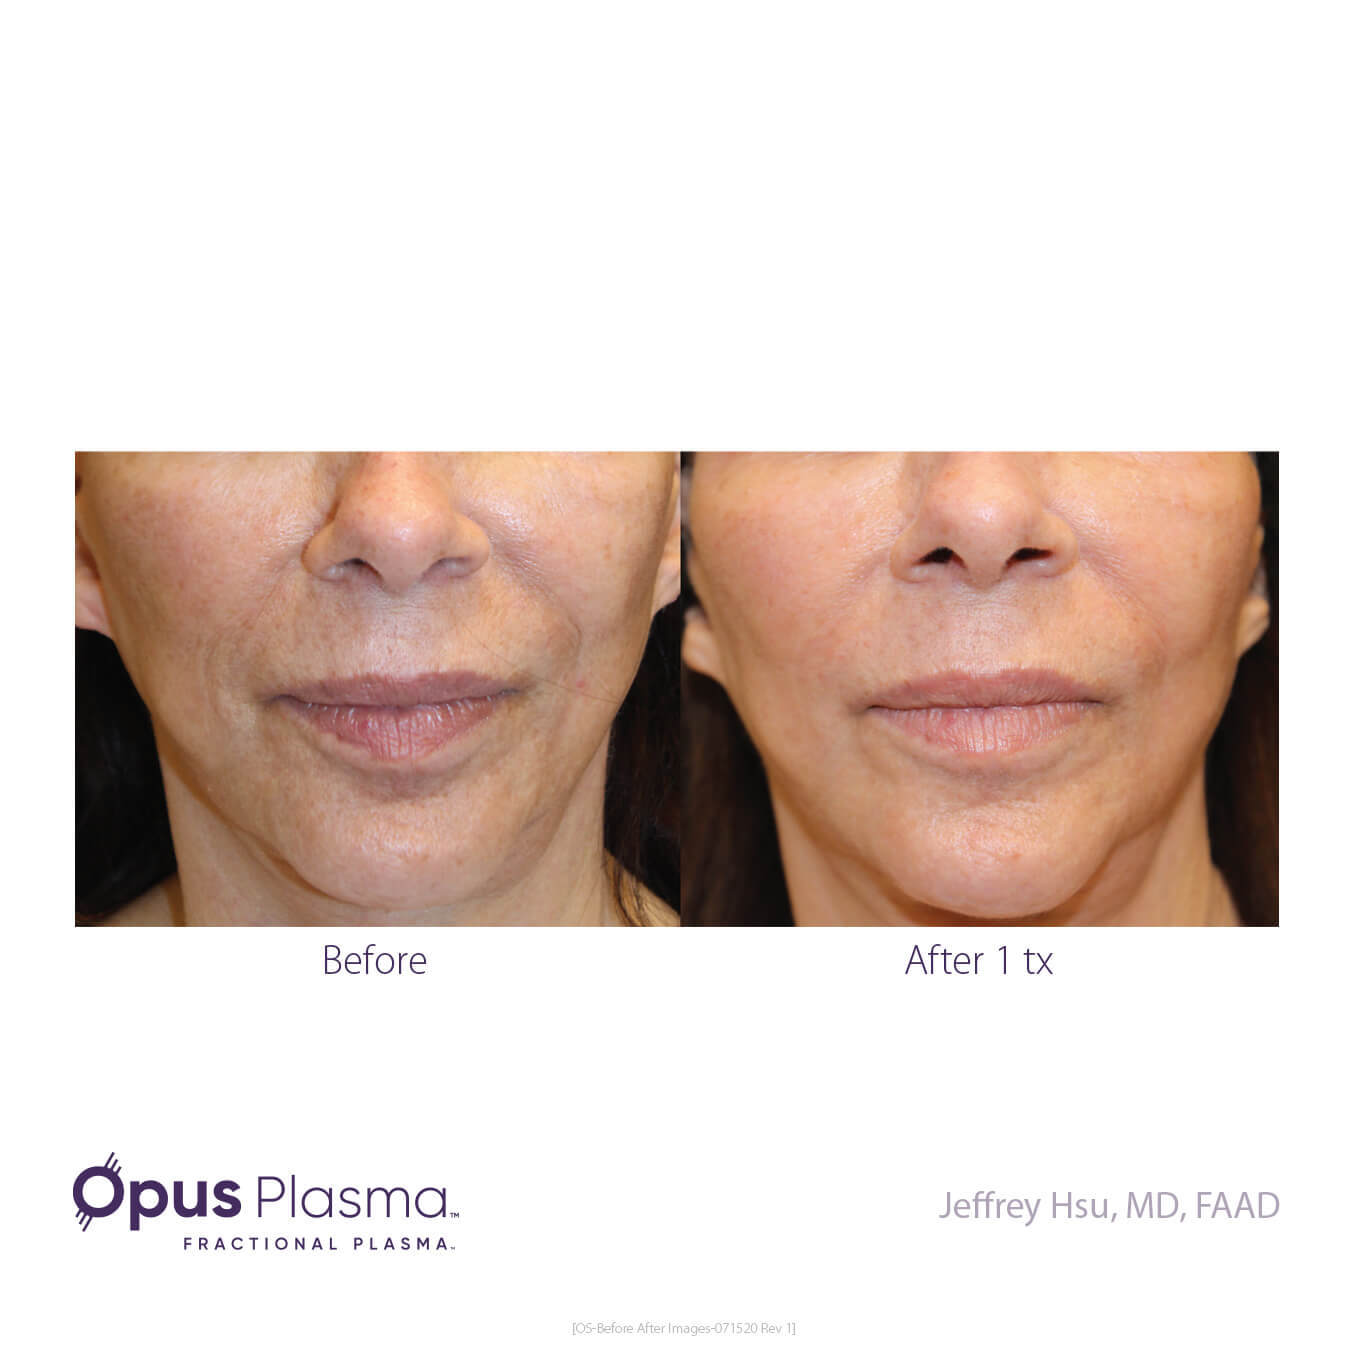 Opus-Before_and_After-B2C-7